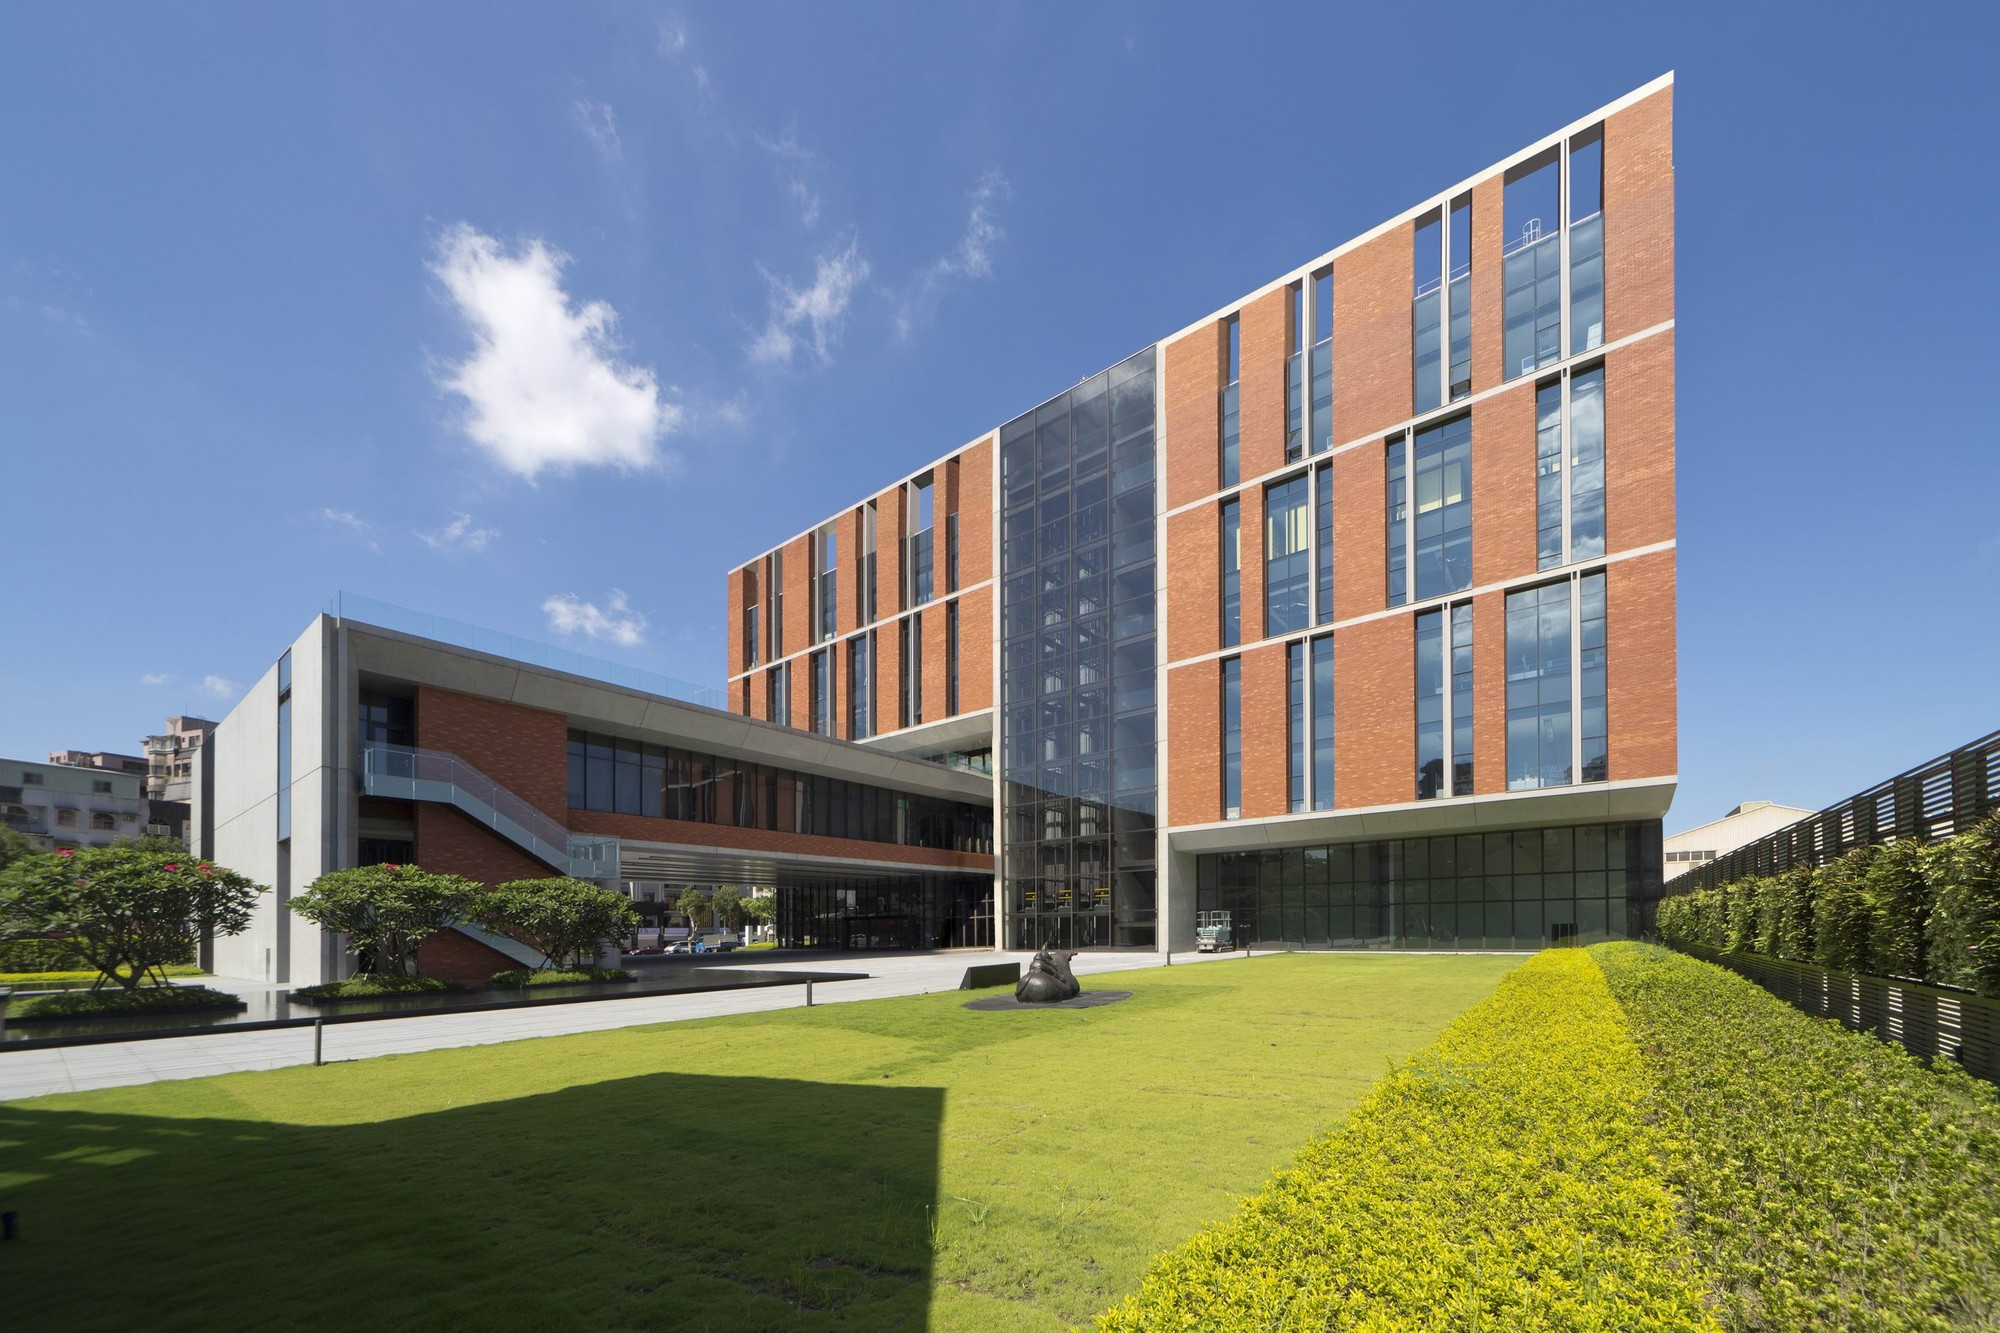 ciscos sdn architecture shrinks down to the campus - HD2000×1333